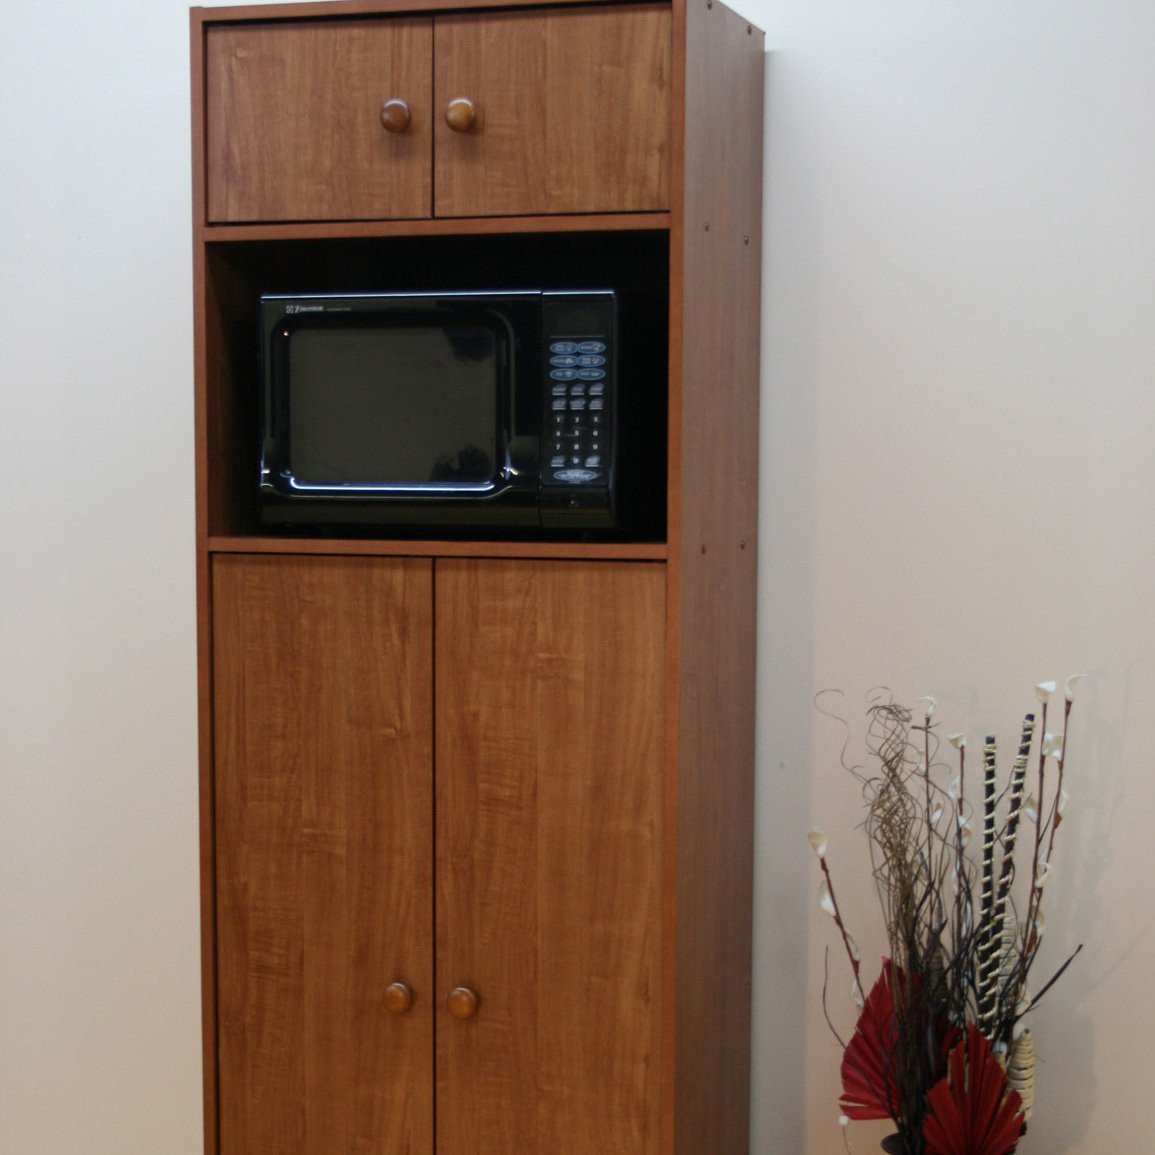 Best ideas about Microwave Pantry Cabinets . Save or Pin Microwave Pantry Cabinet with Microwave Insert at Hayneedle Now.